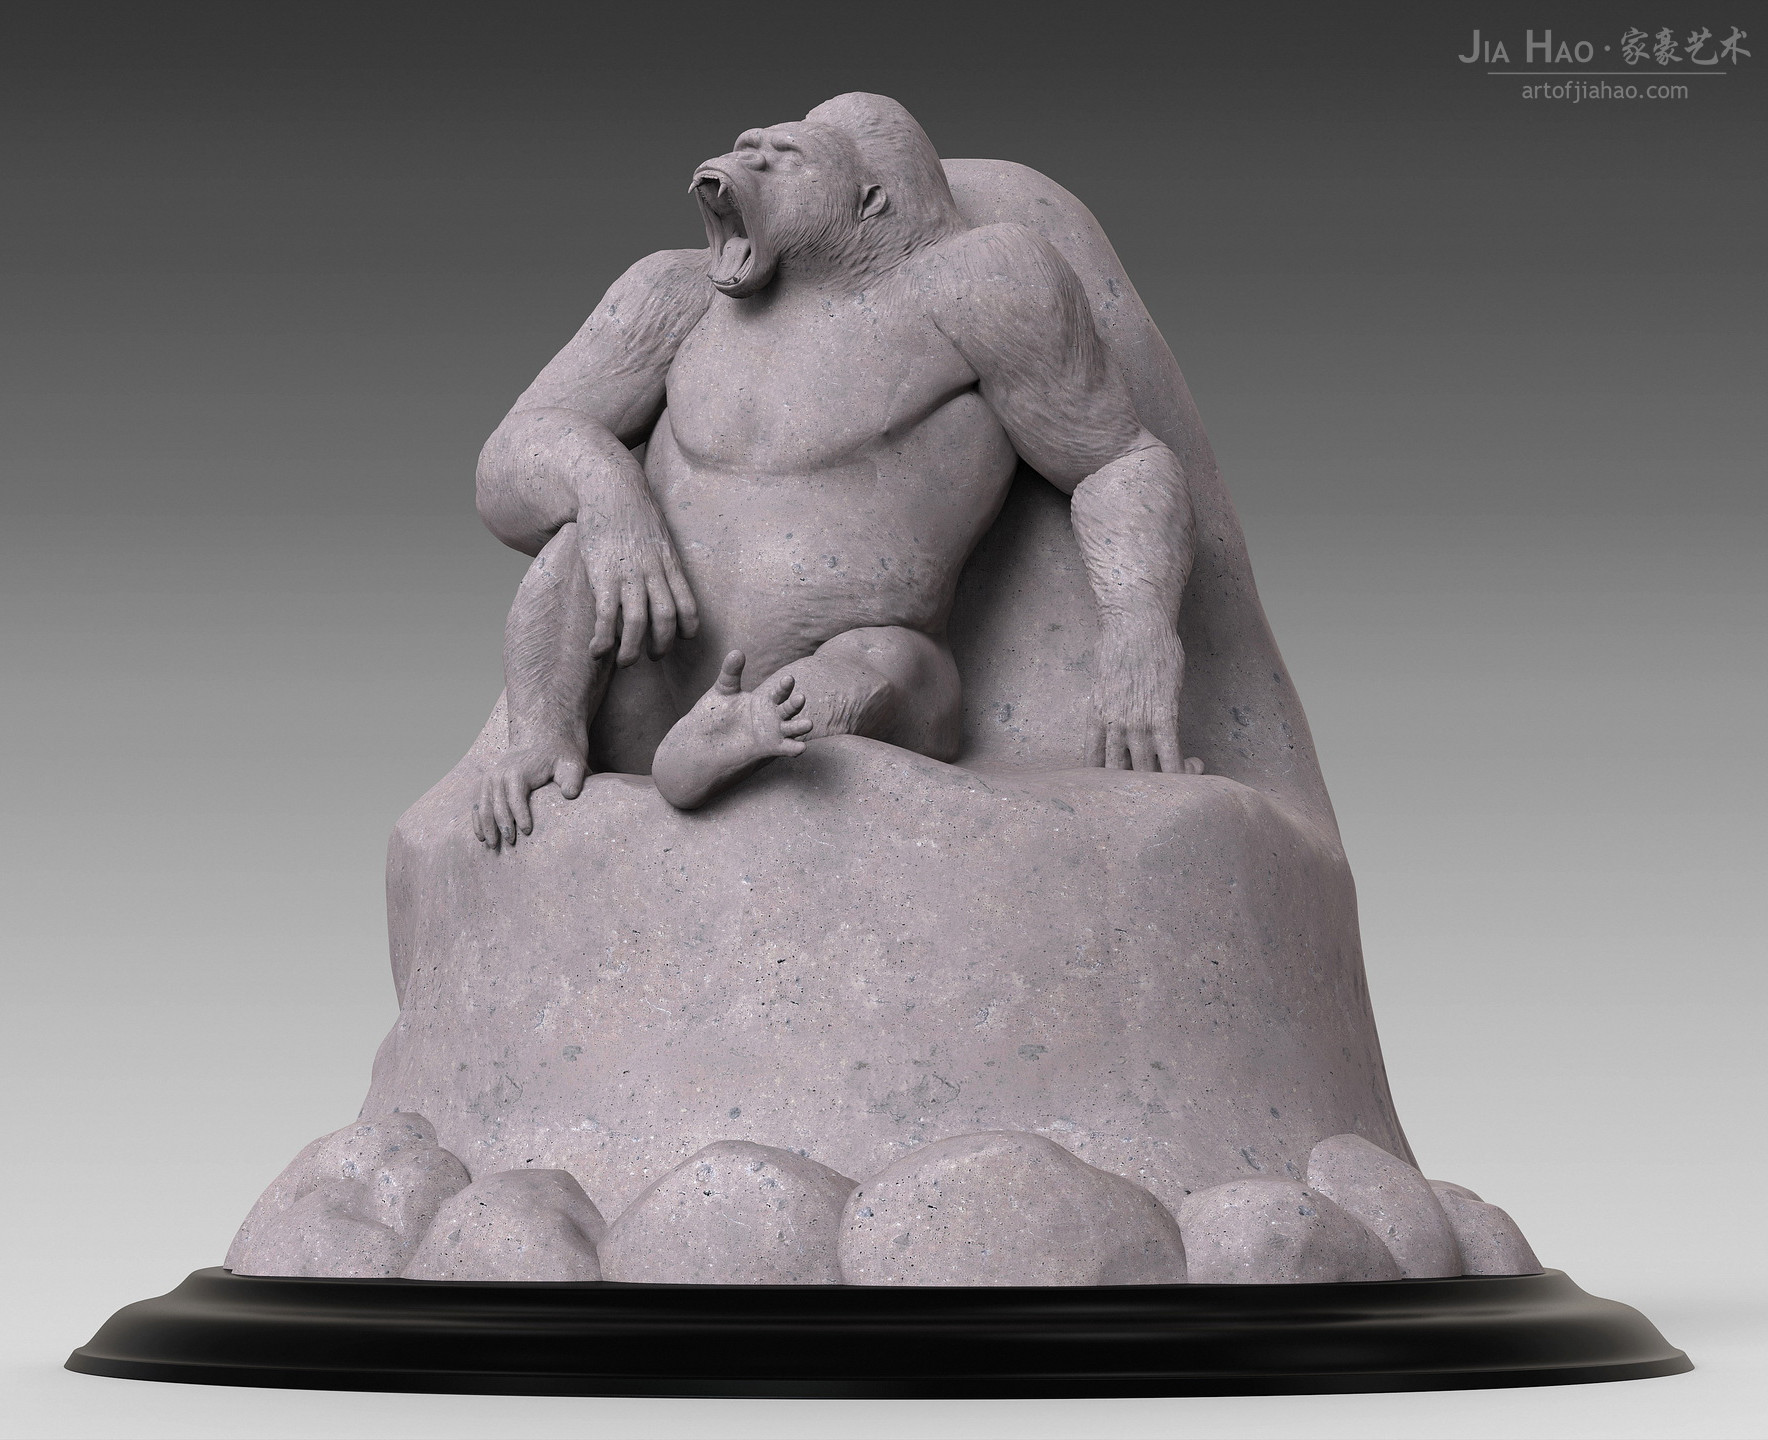 Jia hao gorilla digitalsculpture 01